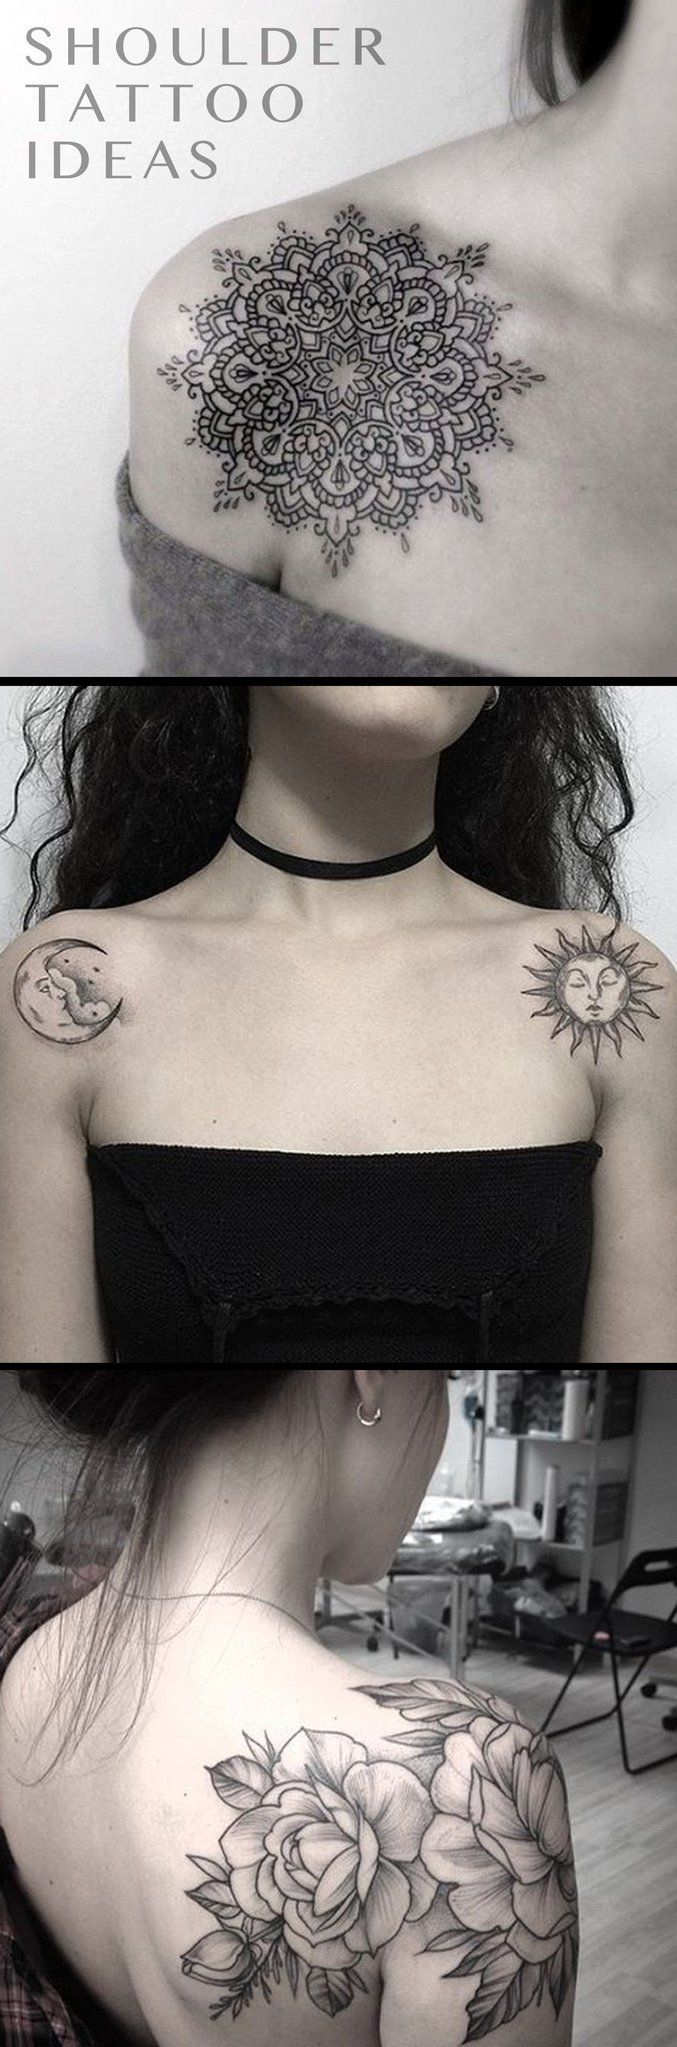 Popular Shoulder Tattoo Ideas For Woman Black And White